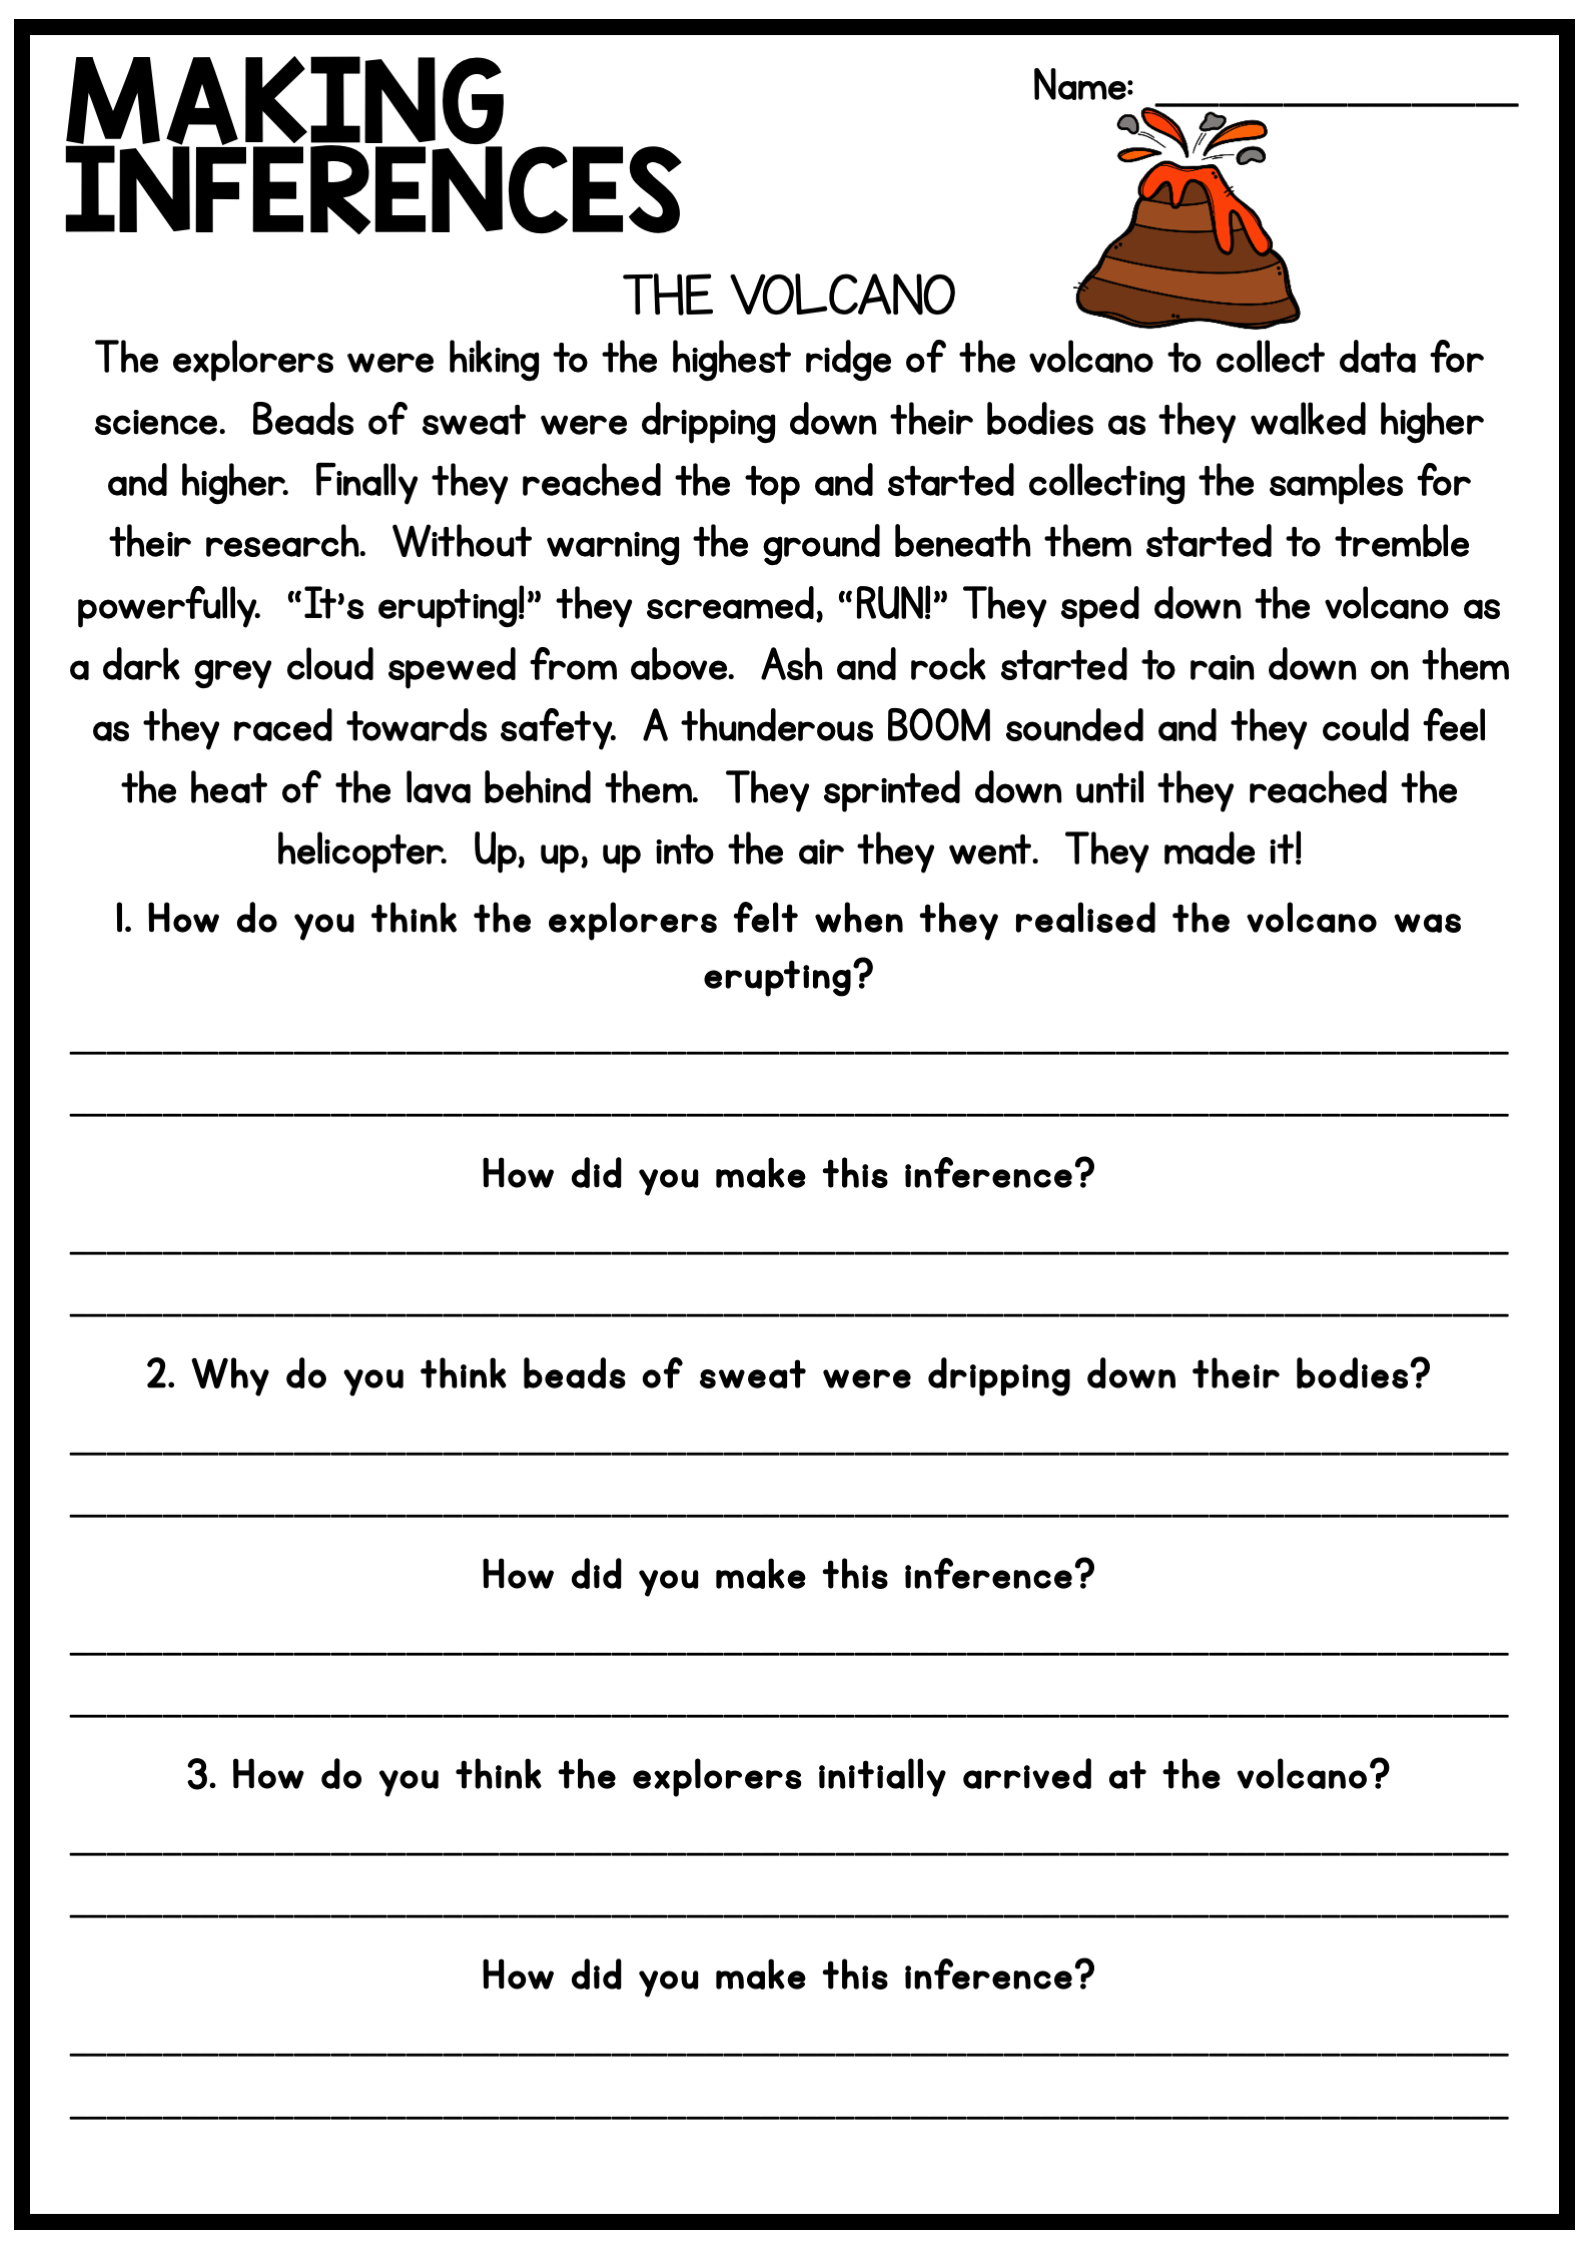 medium resolution of Making Inferences and Drawing Conclusions - Reading Worksheet   5th grade  worksheets